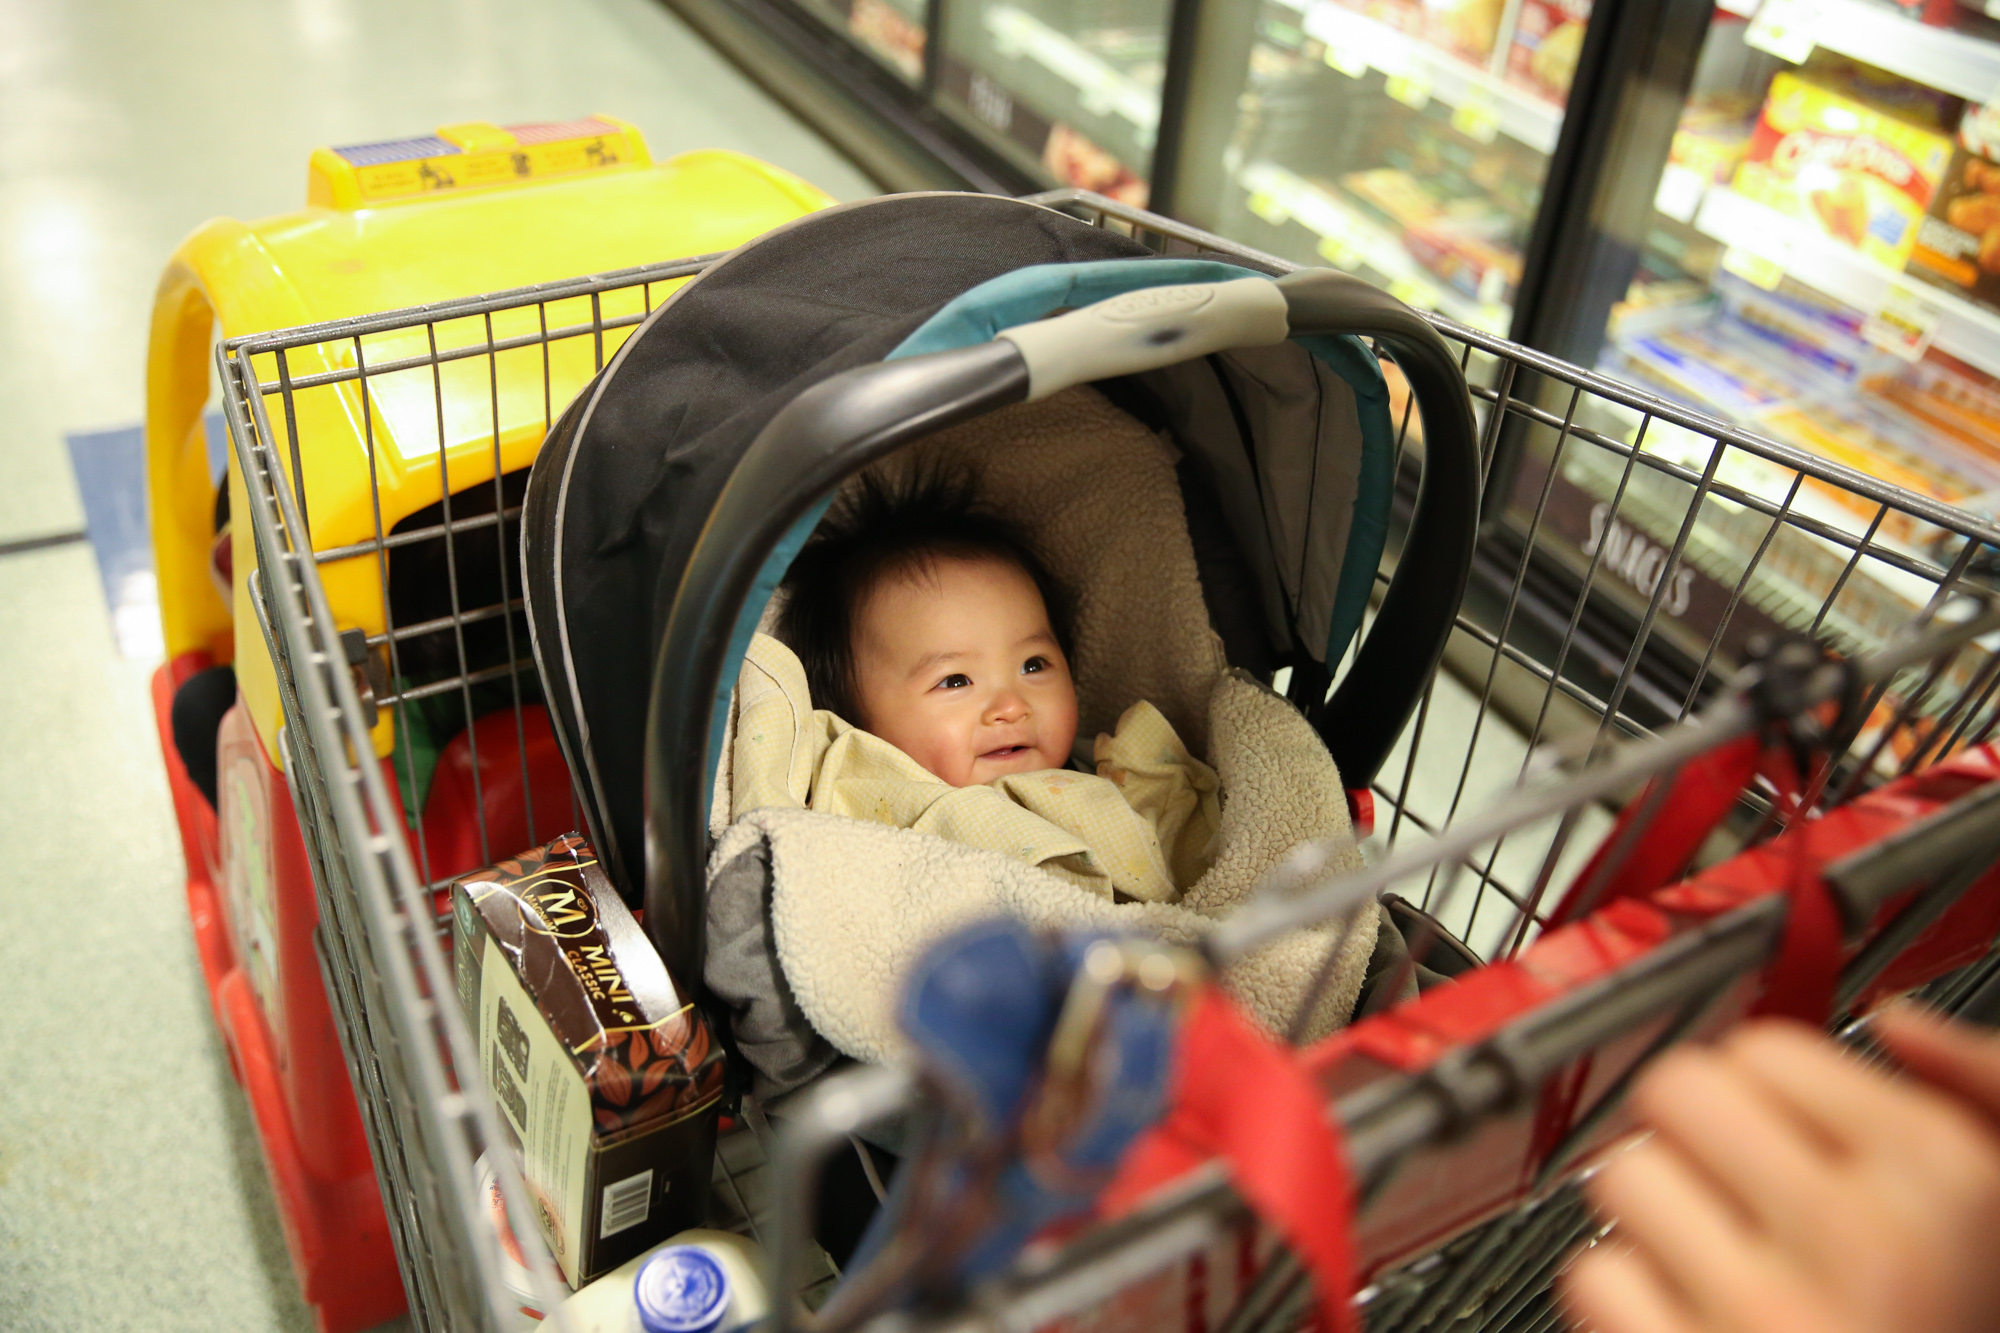 Baby smiles and looks up from bucket carseat placed inside a shopping cart with red and yellow car in front. Walking down frozen aisle in grocery store